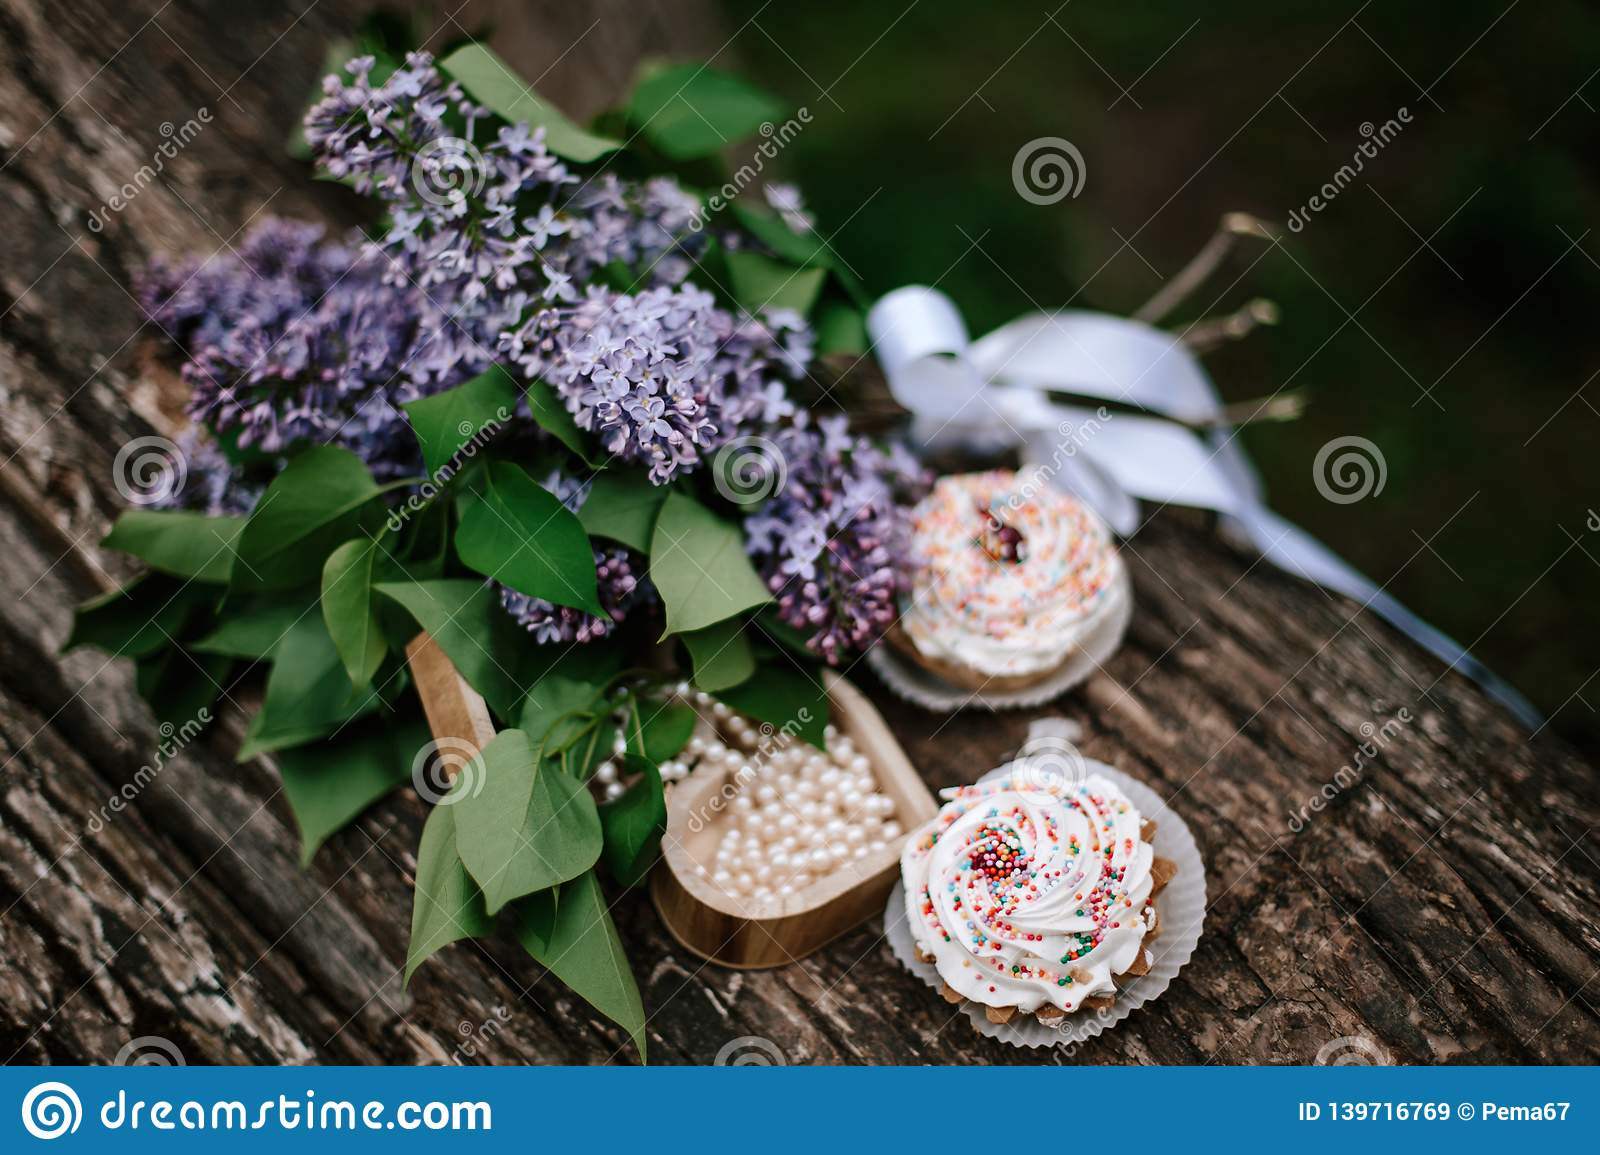 Cakes on a wooden table